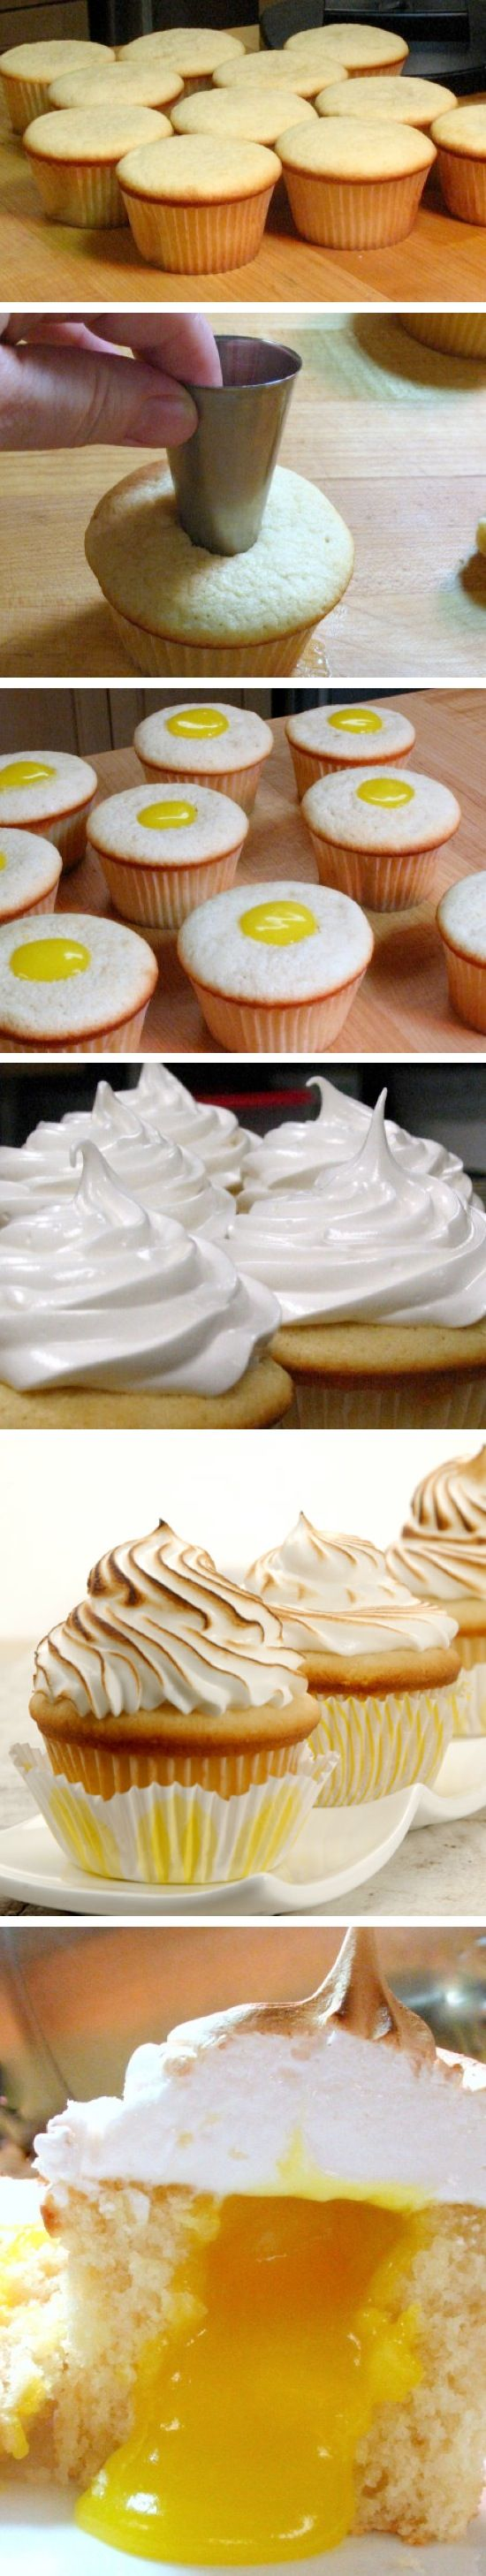 Lemon Meringue Cupcakes. The flavor of the tart lemon filling topped with a sweet, fluffy meringue! Delicious